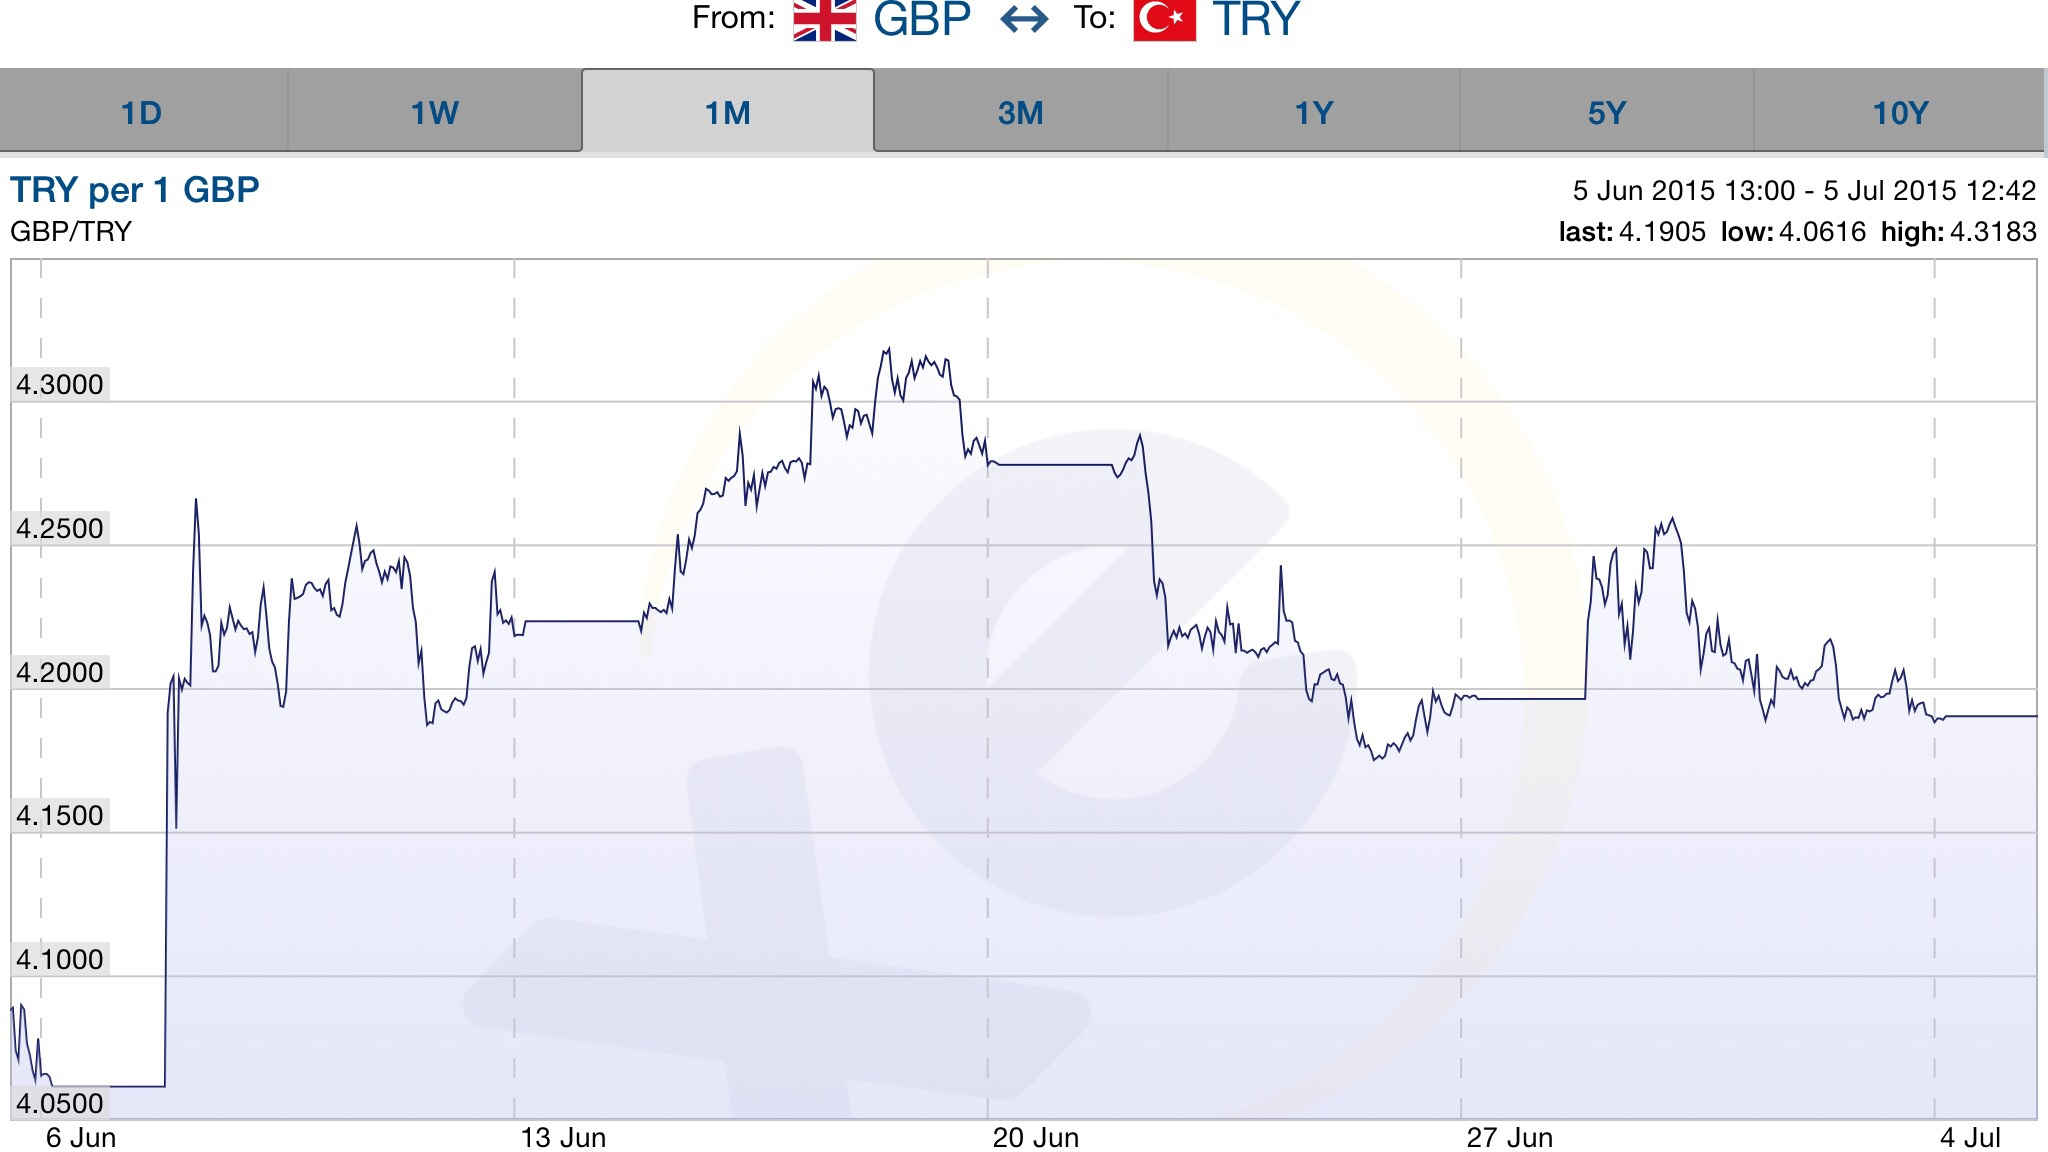 Turkish lira we 4 July 2015